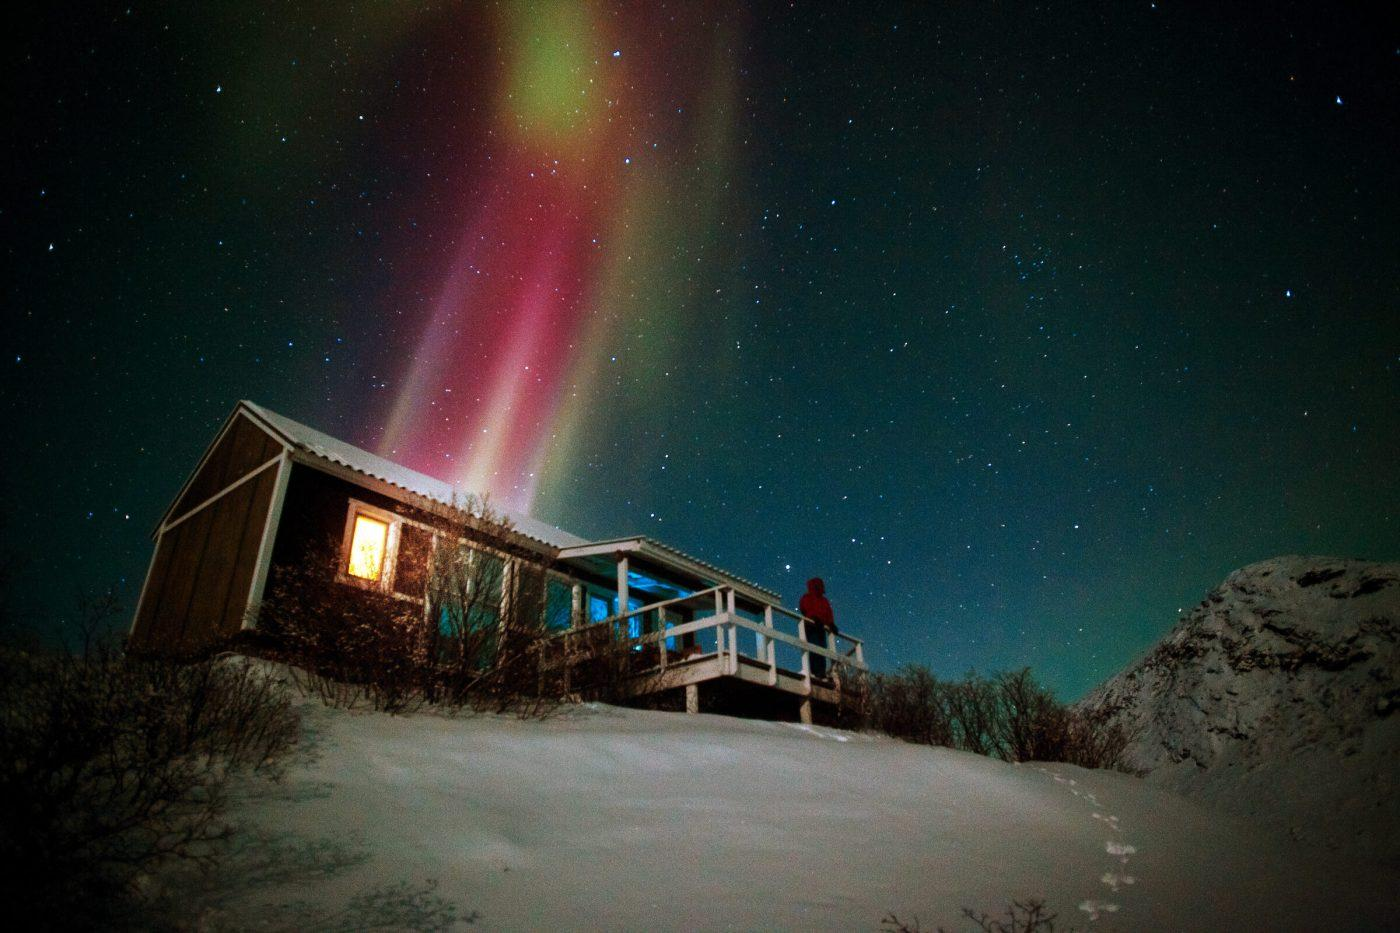 Northern Lights over a hut in the Kangerlussuaq backgrountry in Greenland. By David Trood